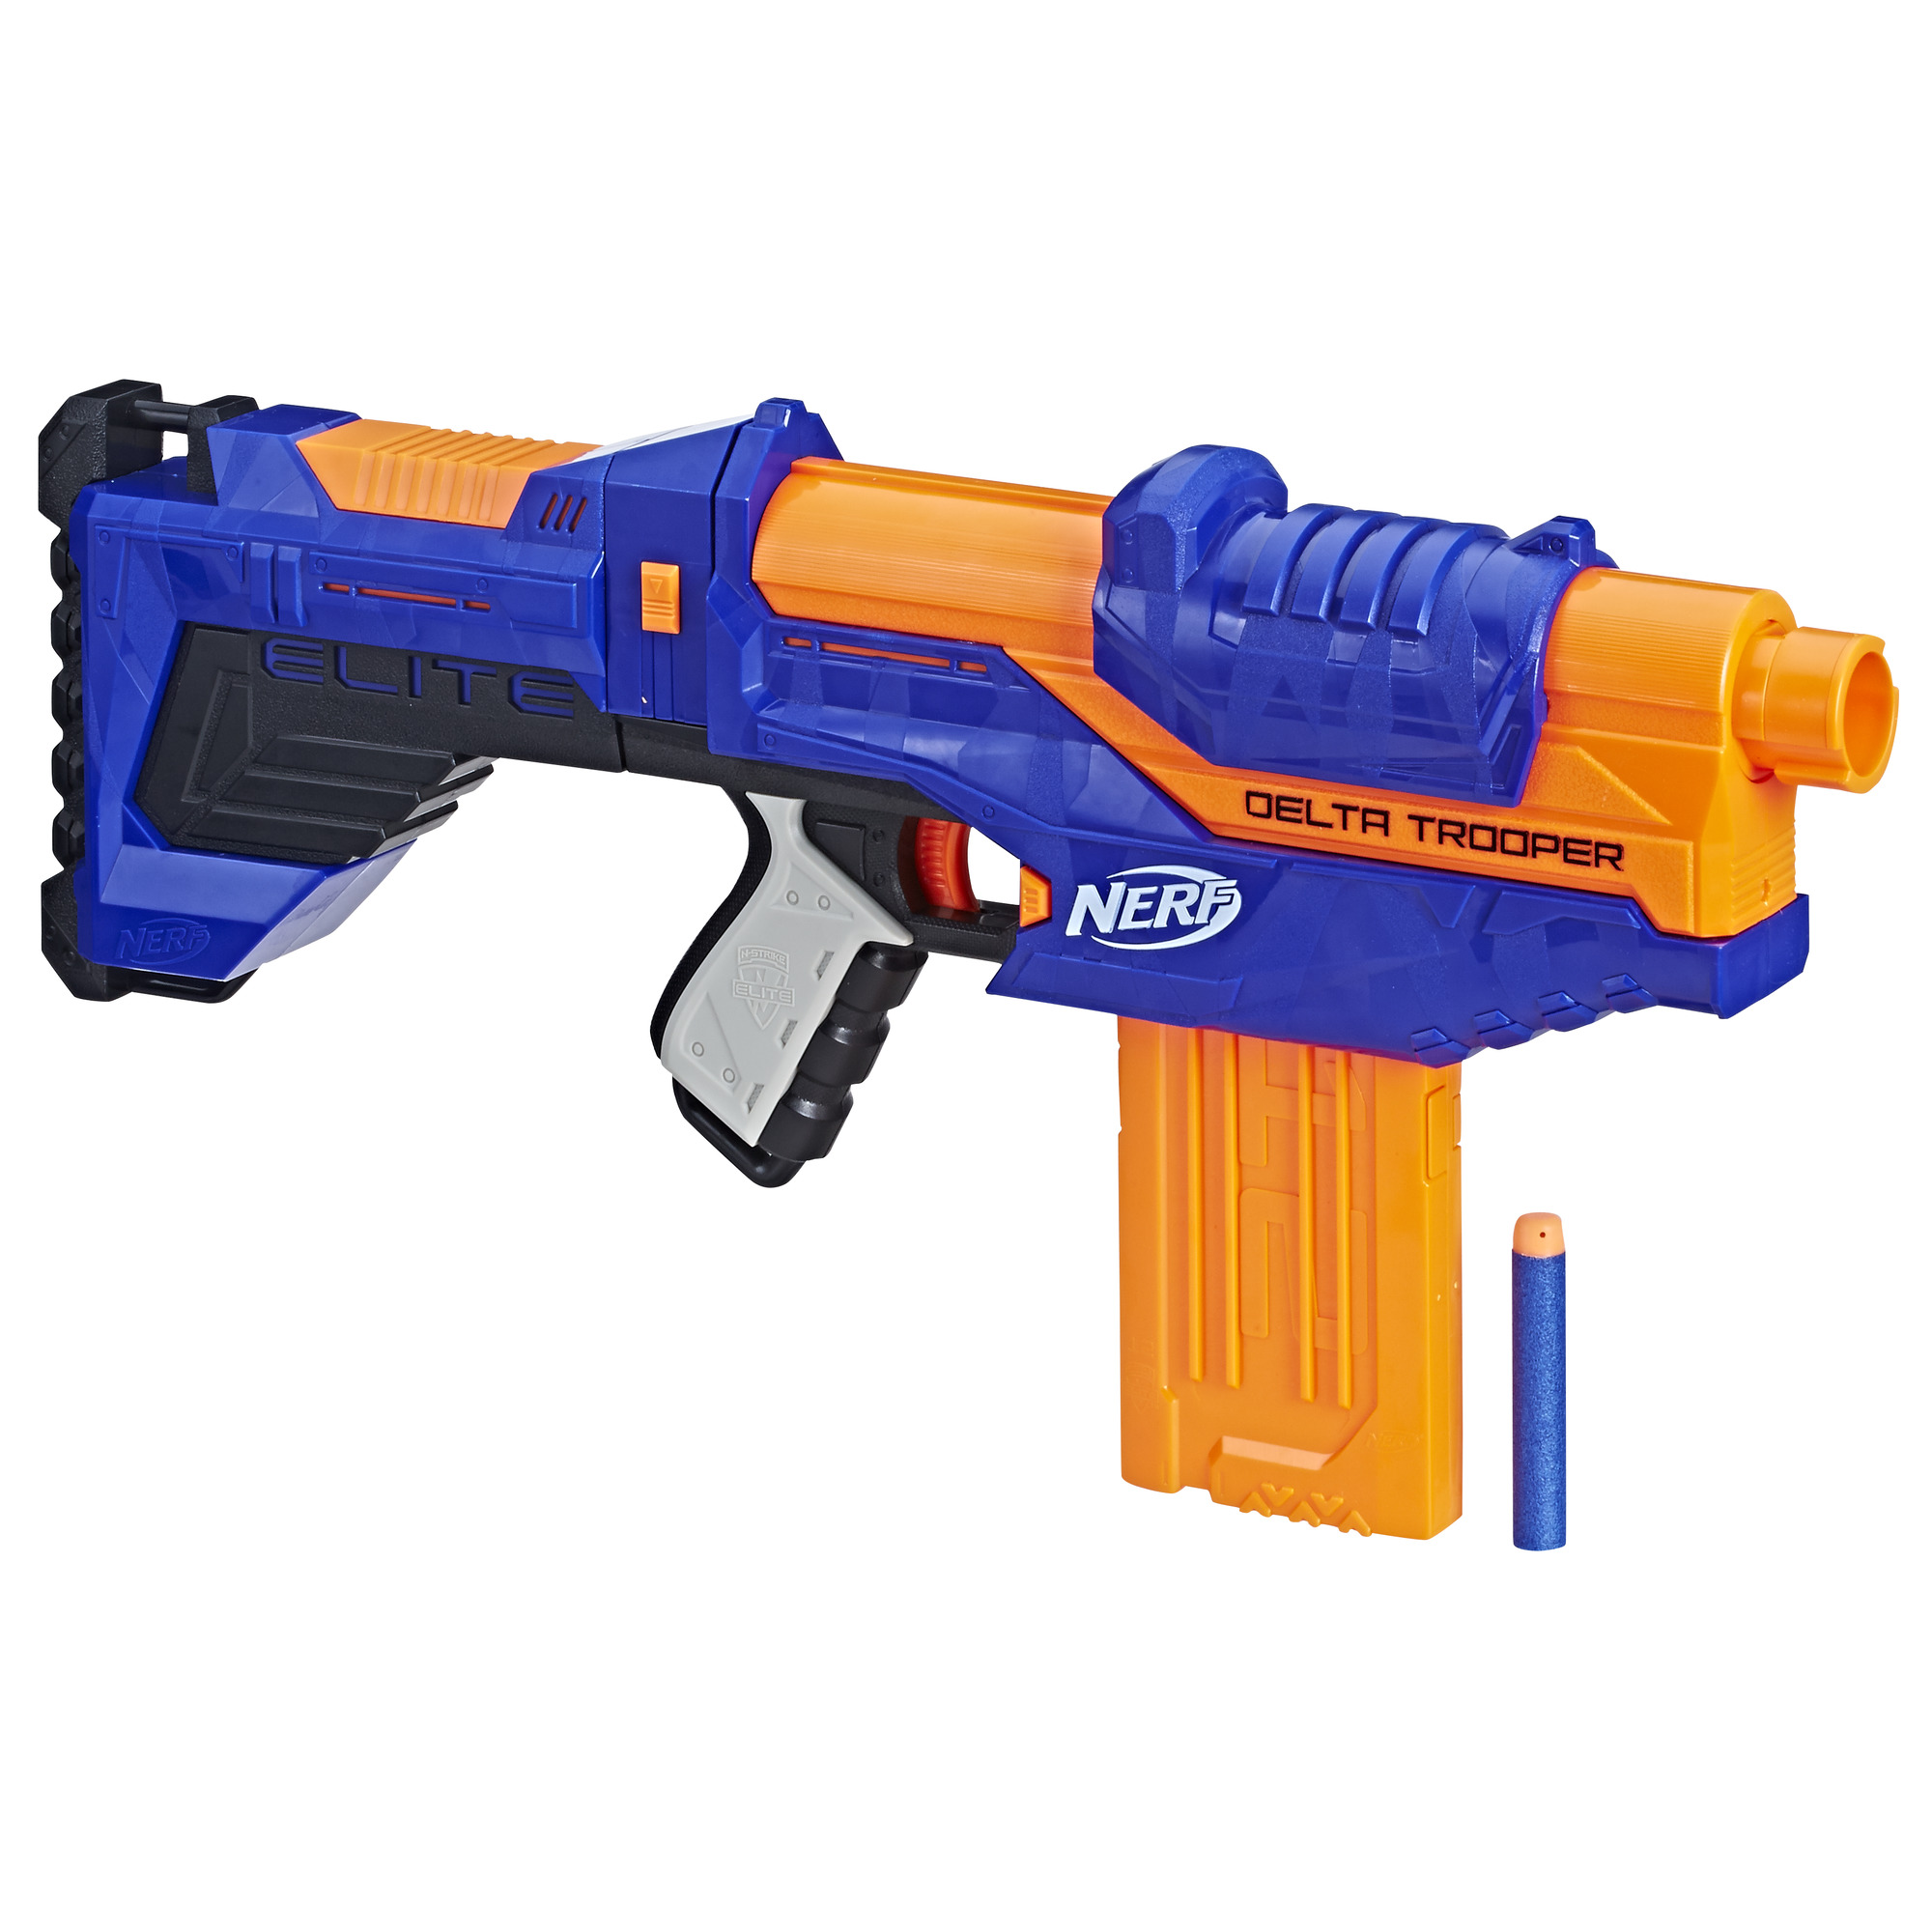 Nerf N-Strike Elite Delta Trooper by Hasbro Inc.